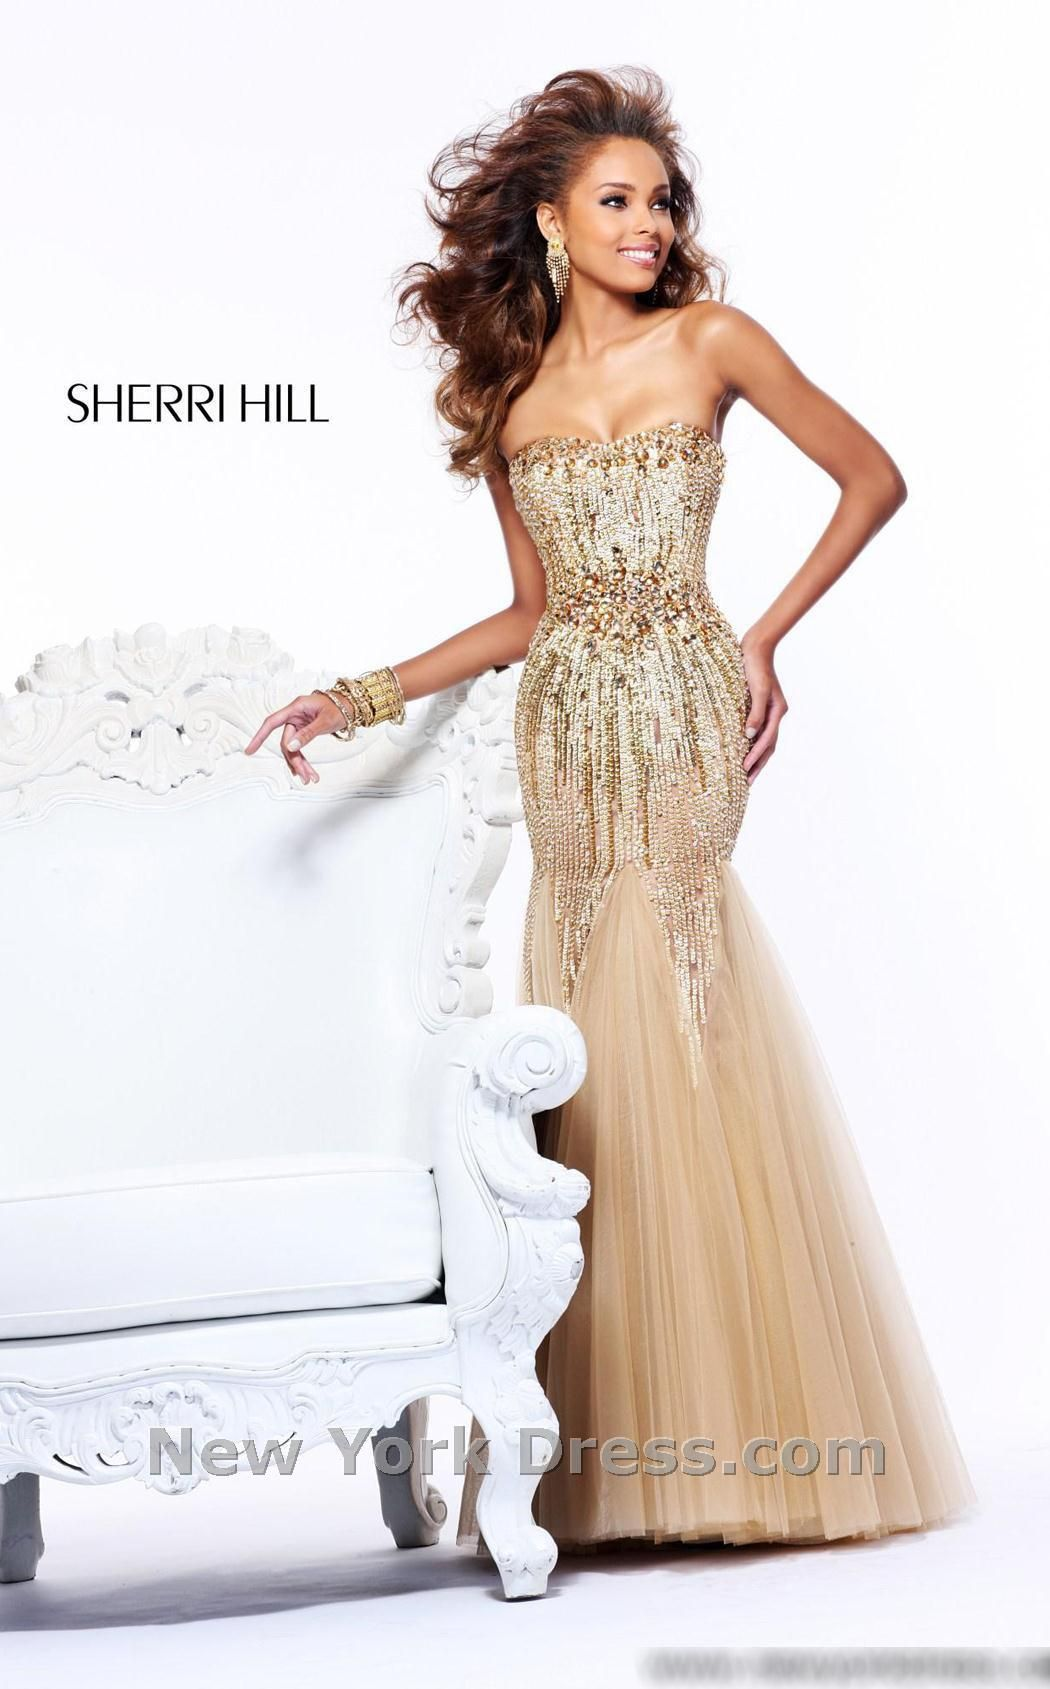 Sherri hill dress bodice sequins and celebrity